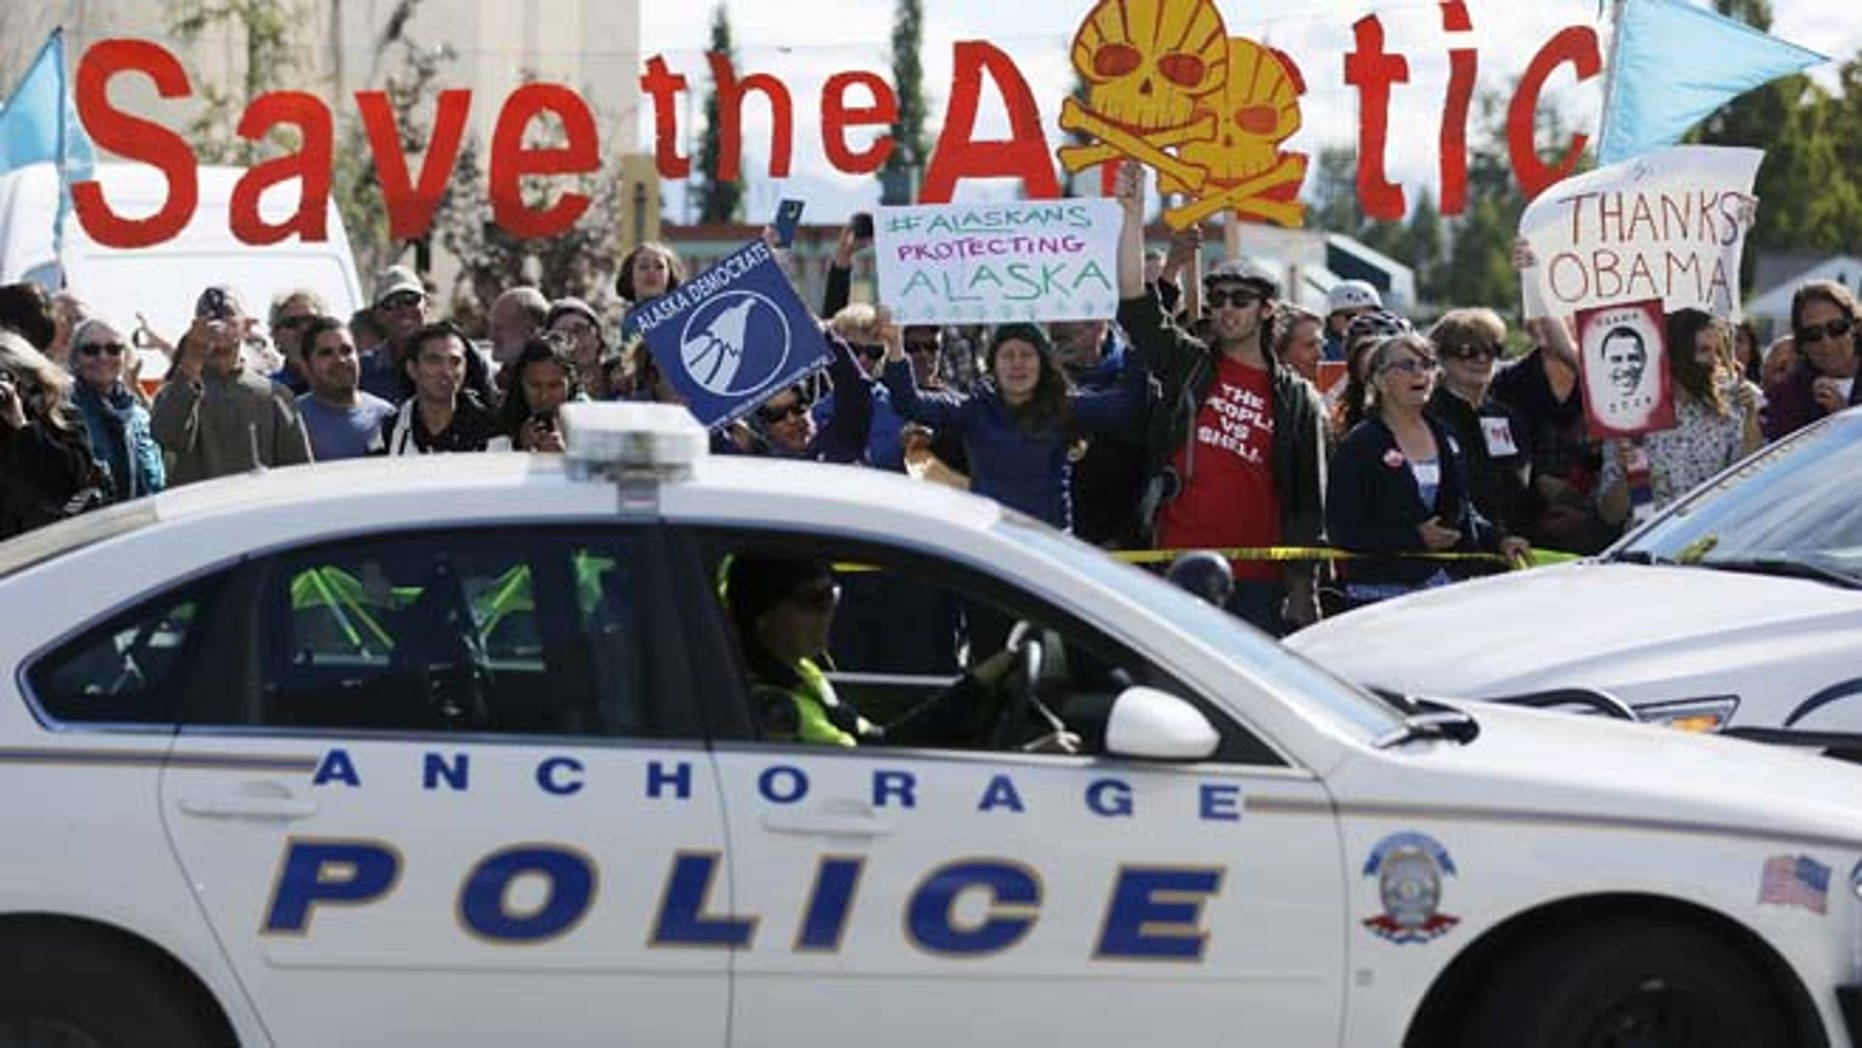 Aug. 31: People protesting against Shell Oil greet President Obama's motorcade as he arrives to deliver remarks to the GLACIER Conference in Anchorage, Alaska.